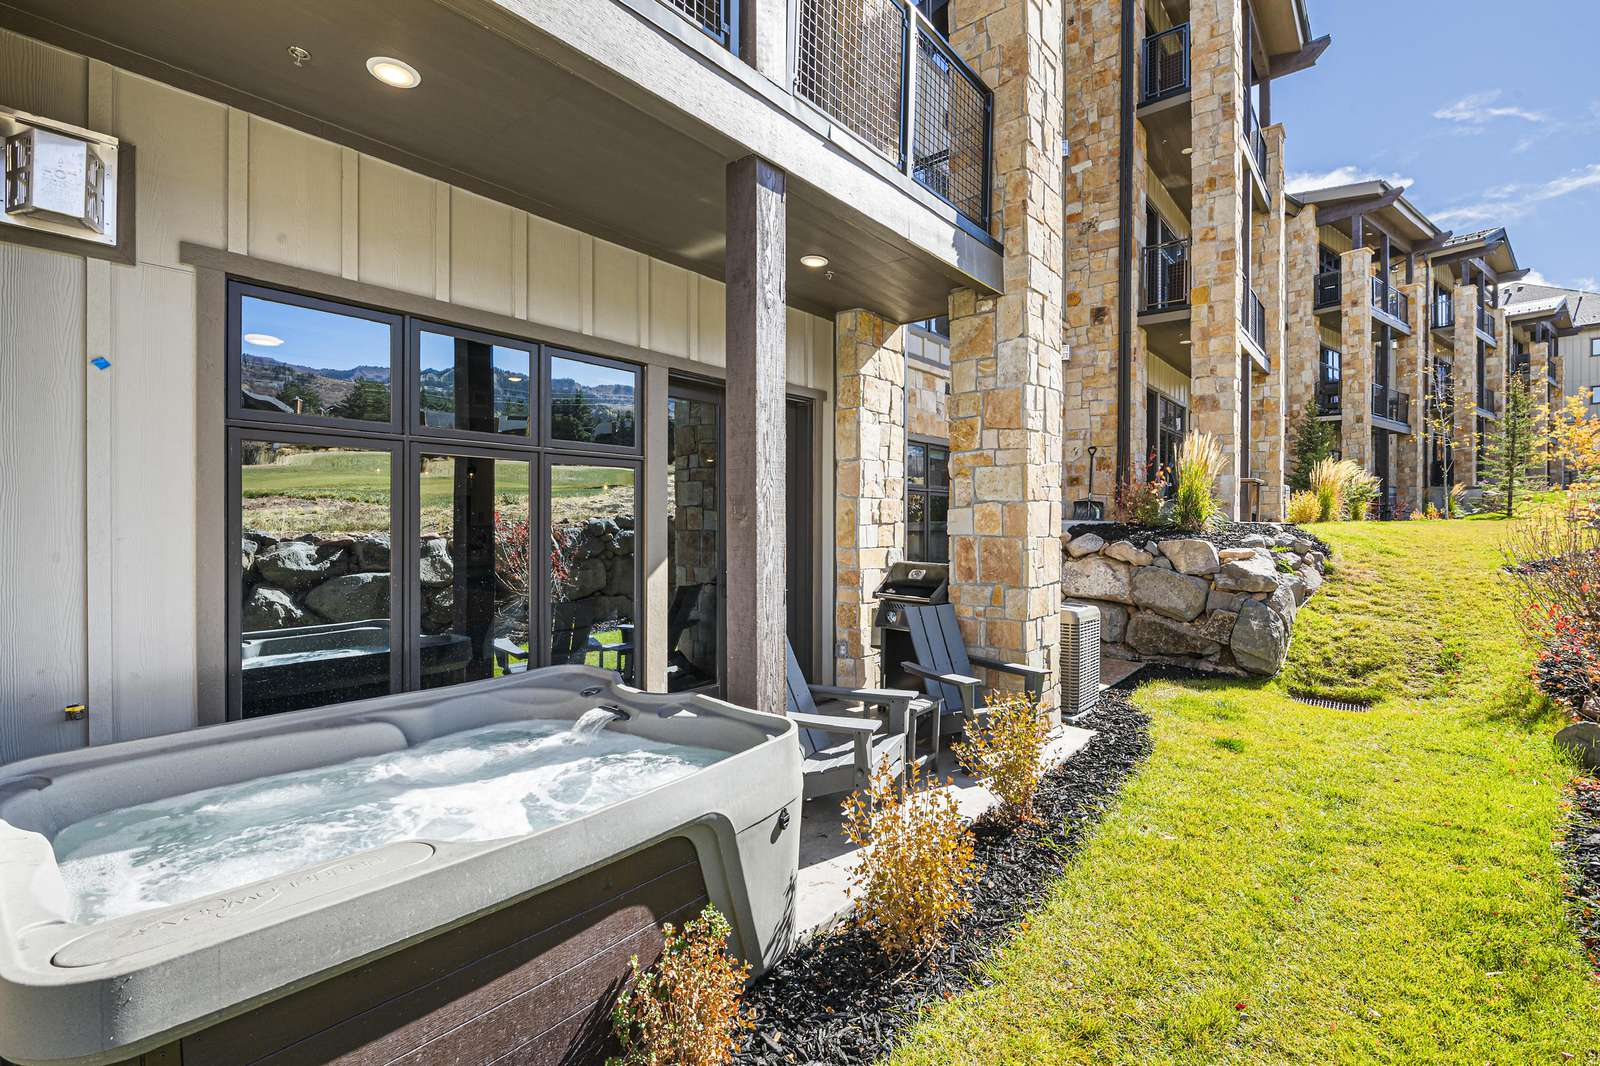 The patio windows reflect the golf course and mountain views